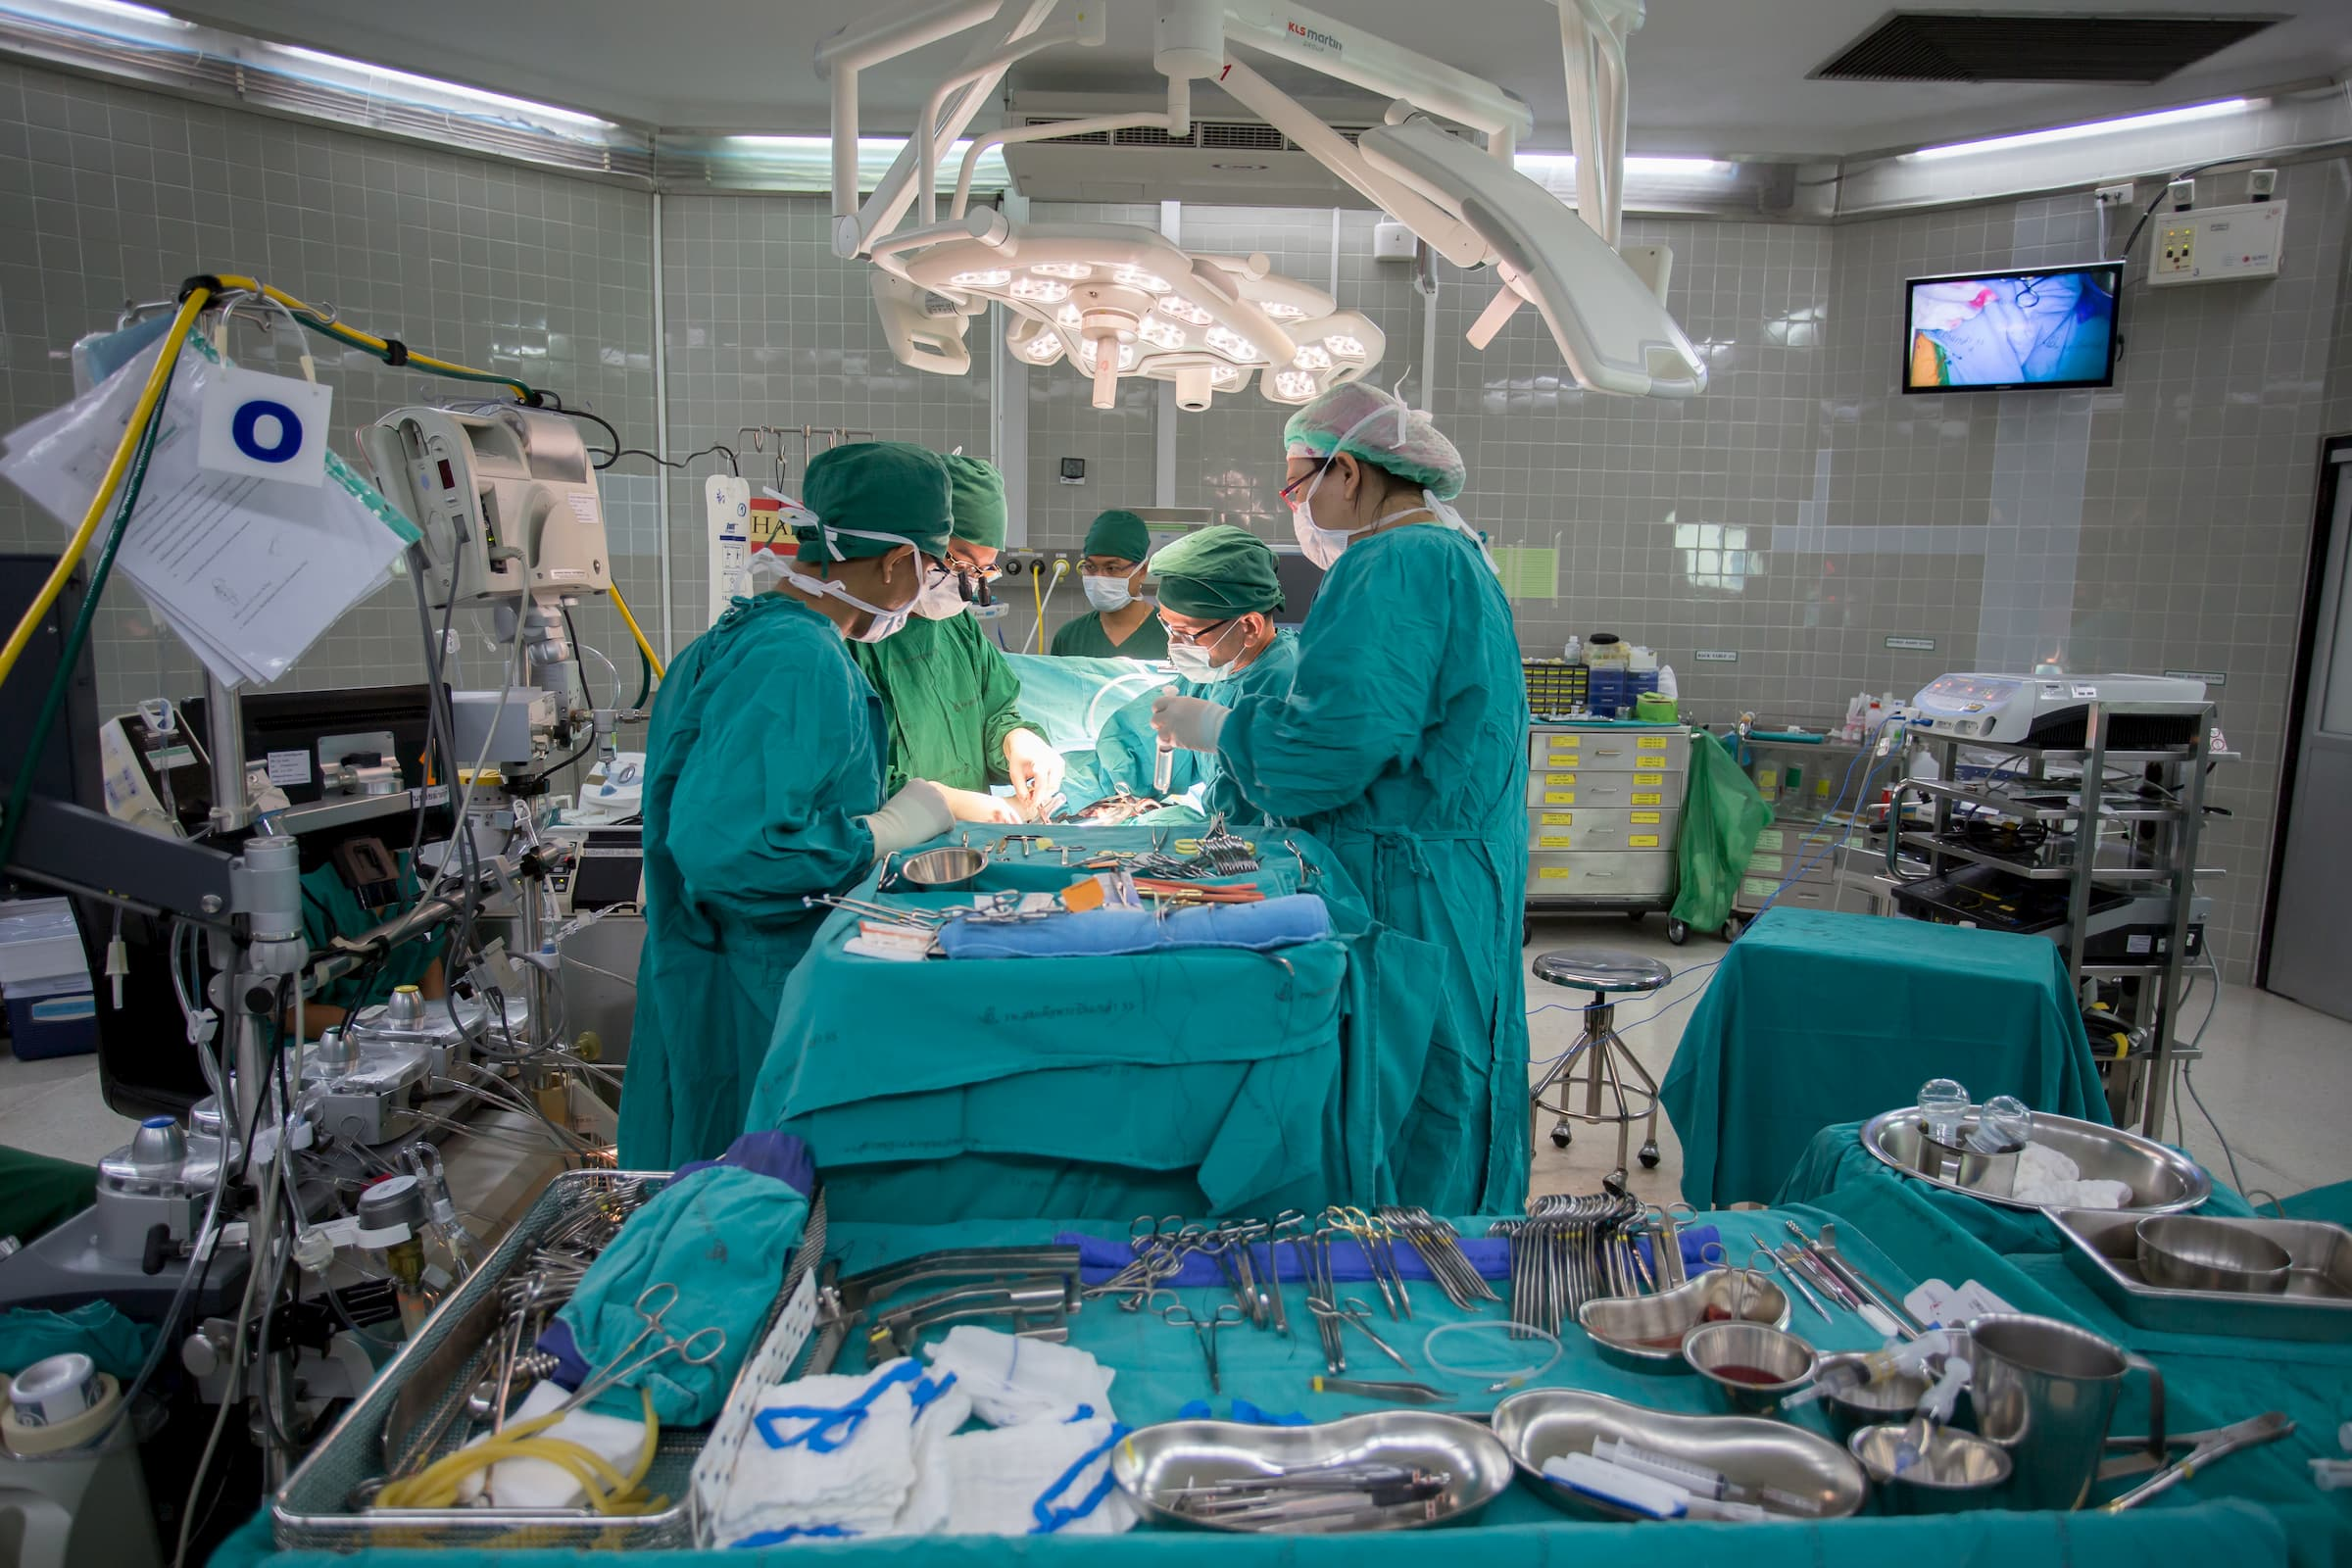 surgery with surgical team in aqua scrubs performing surgery in operating room with medical tools and surgical trays in foreground